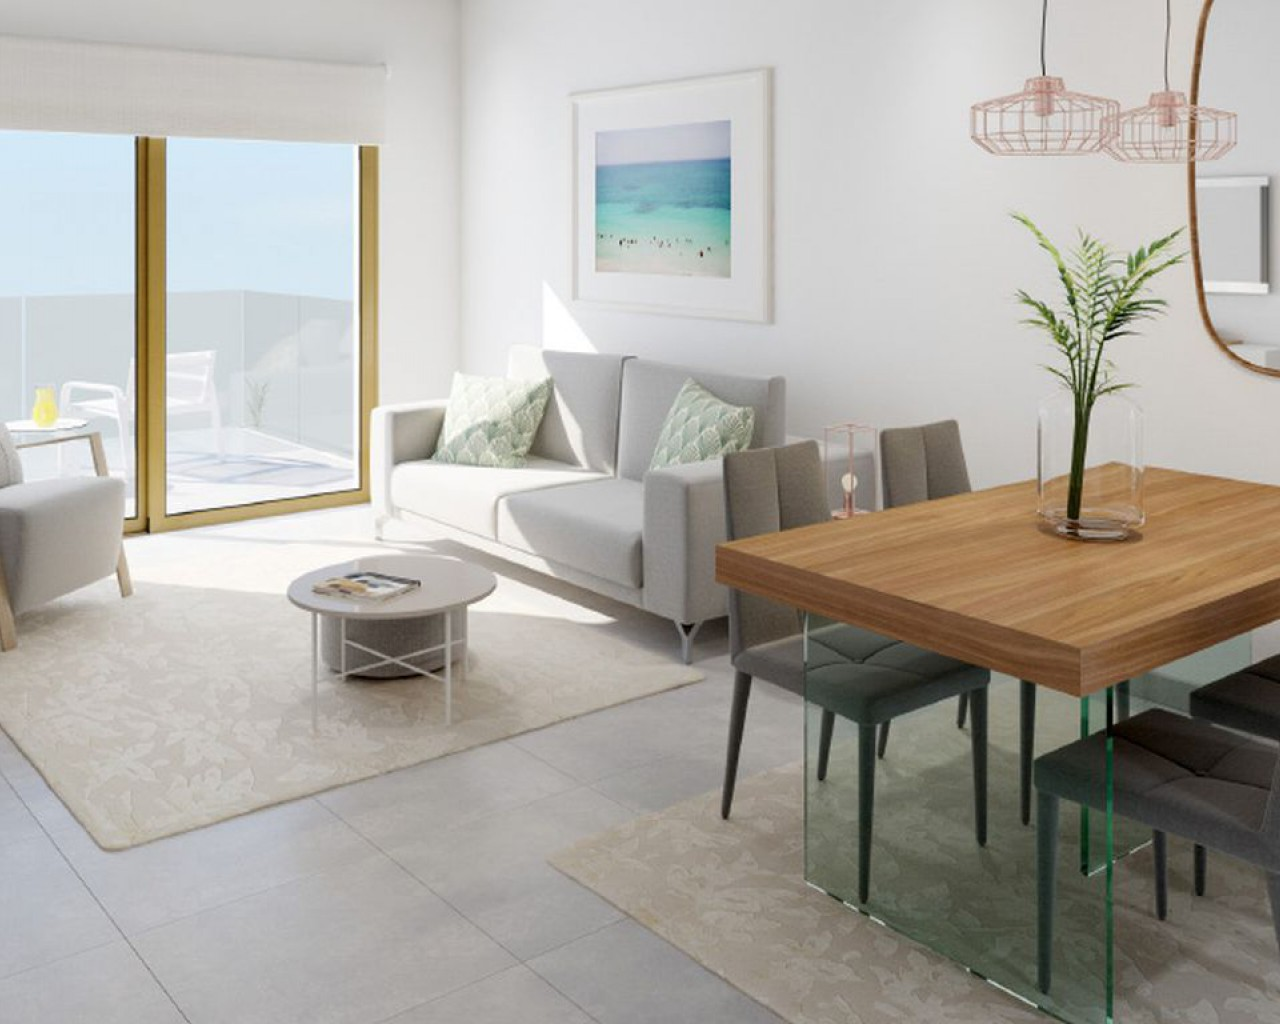 New Build - Ground floor apartment - Los Dolses